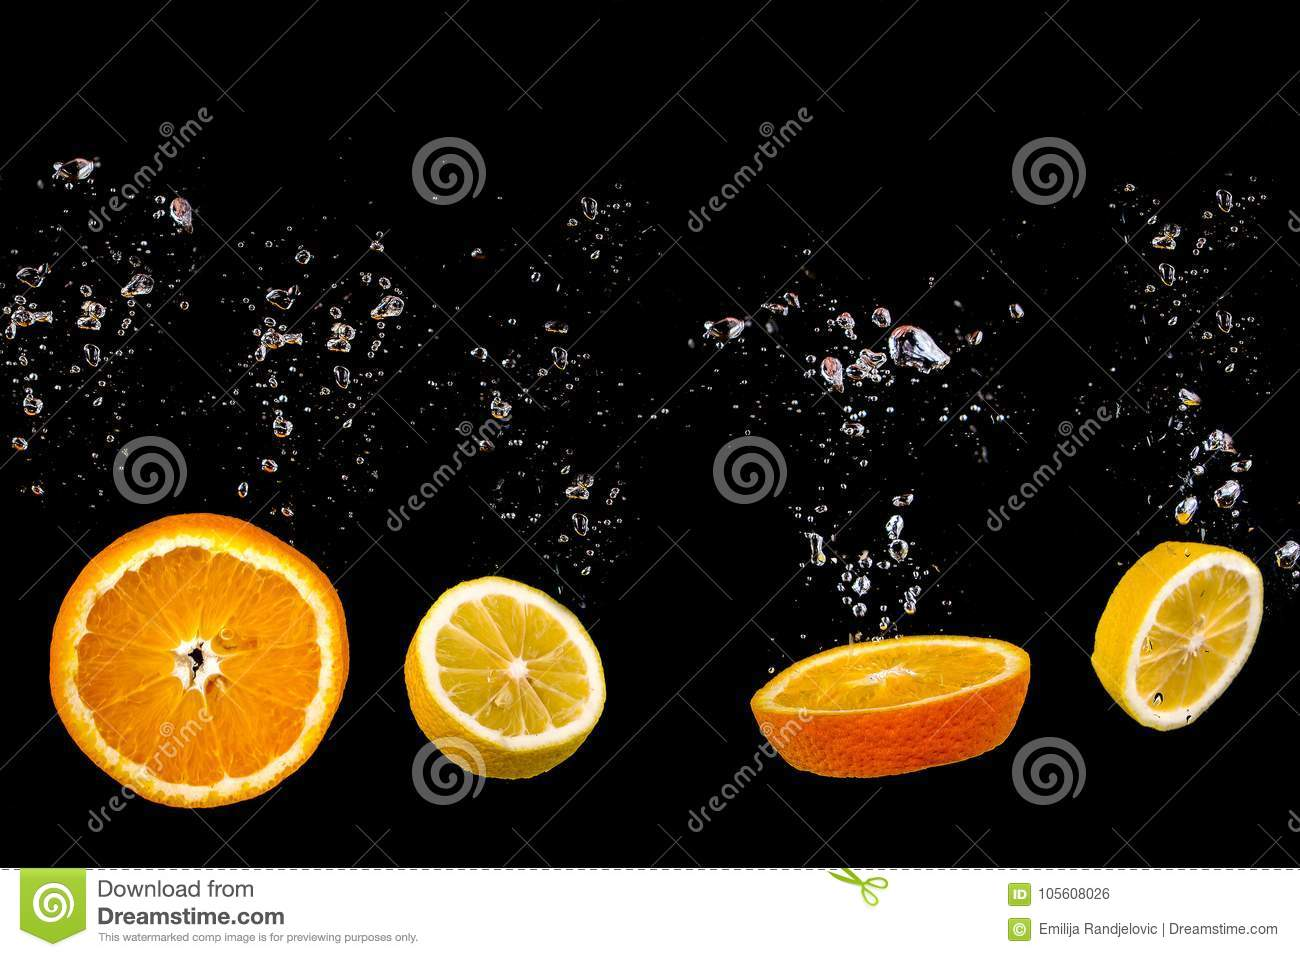 Cut Orange and lemon floats on water with bubbles, fruits is on a black background